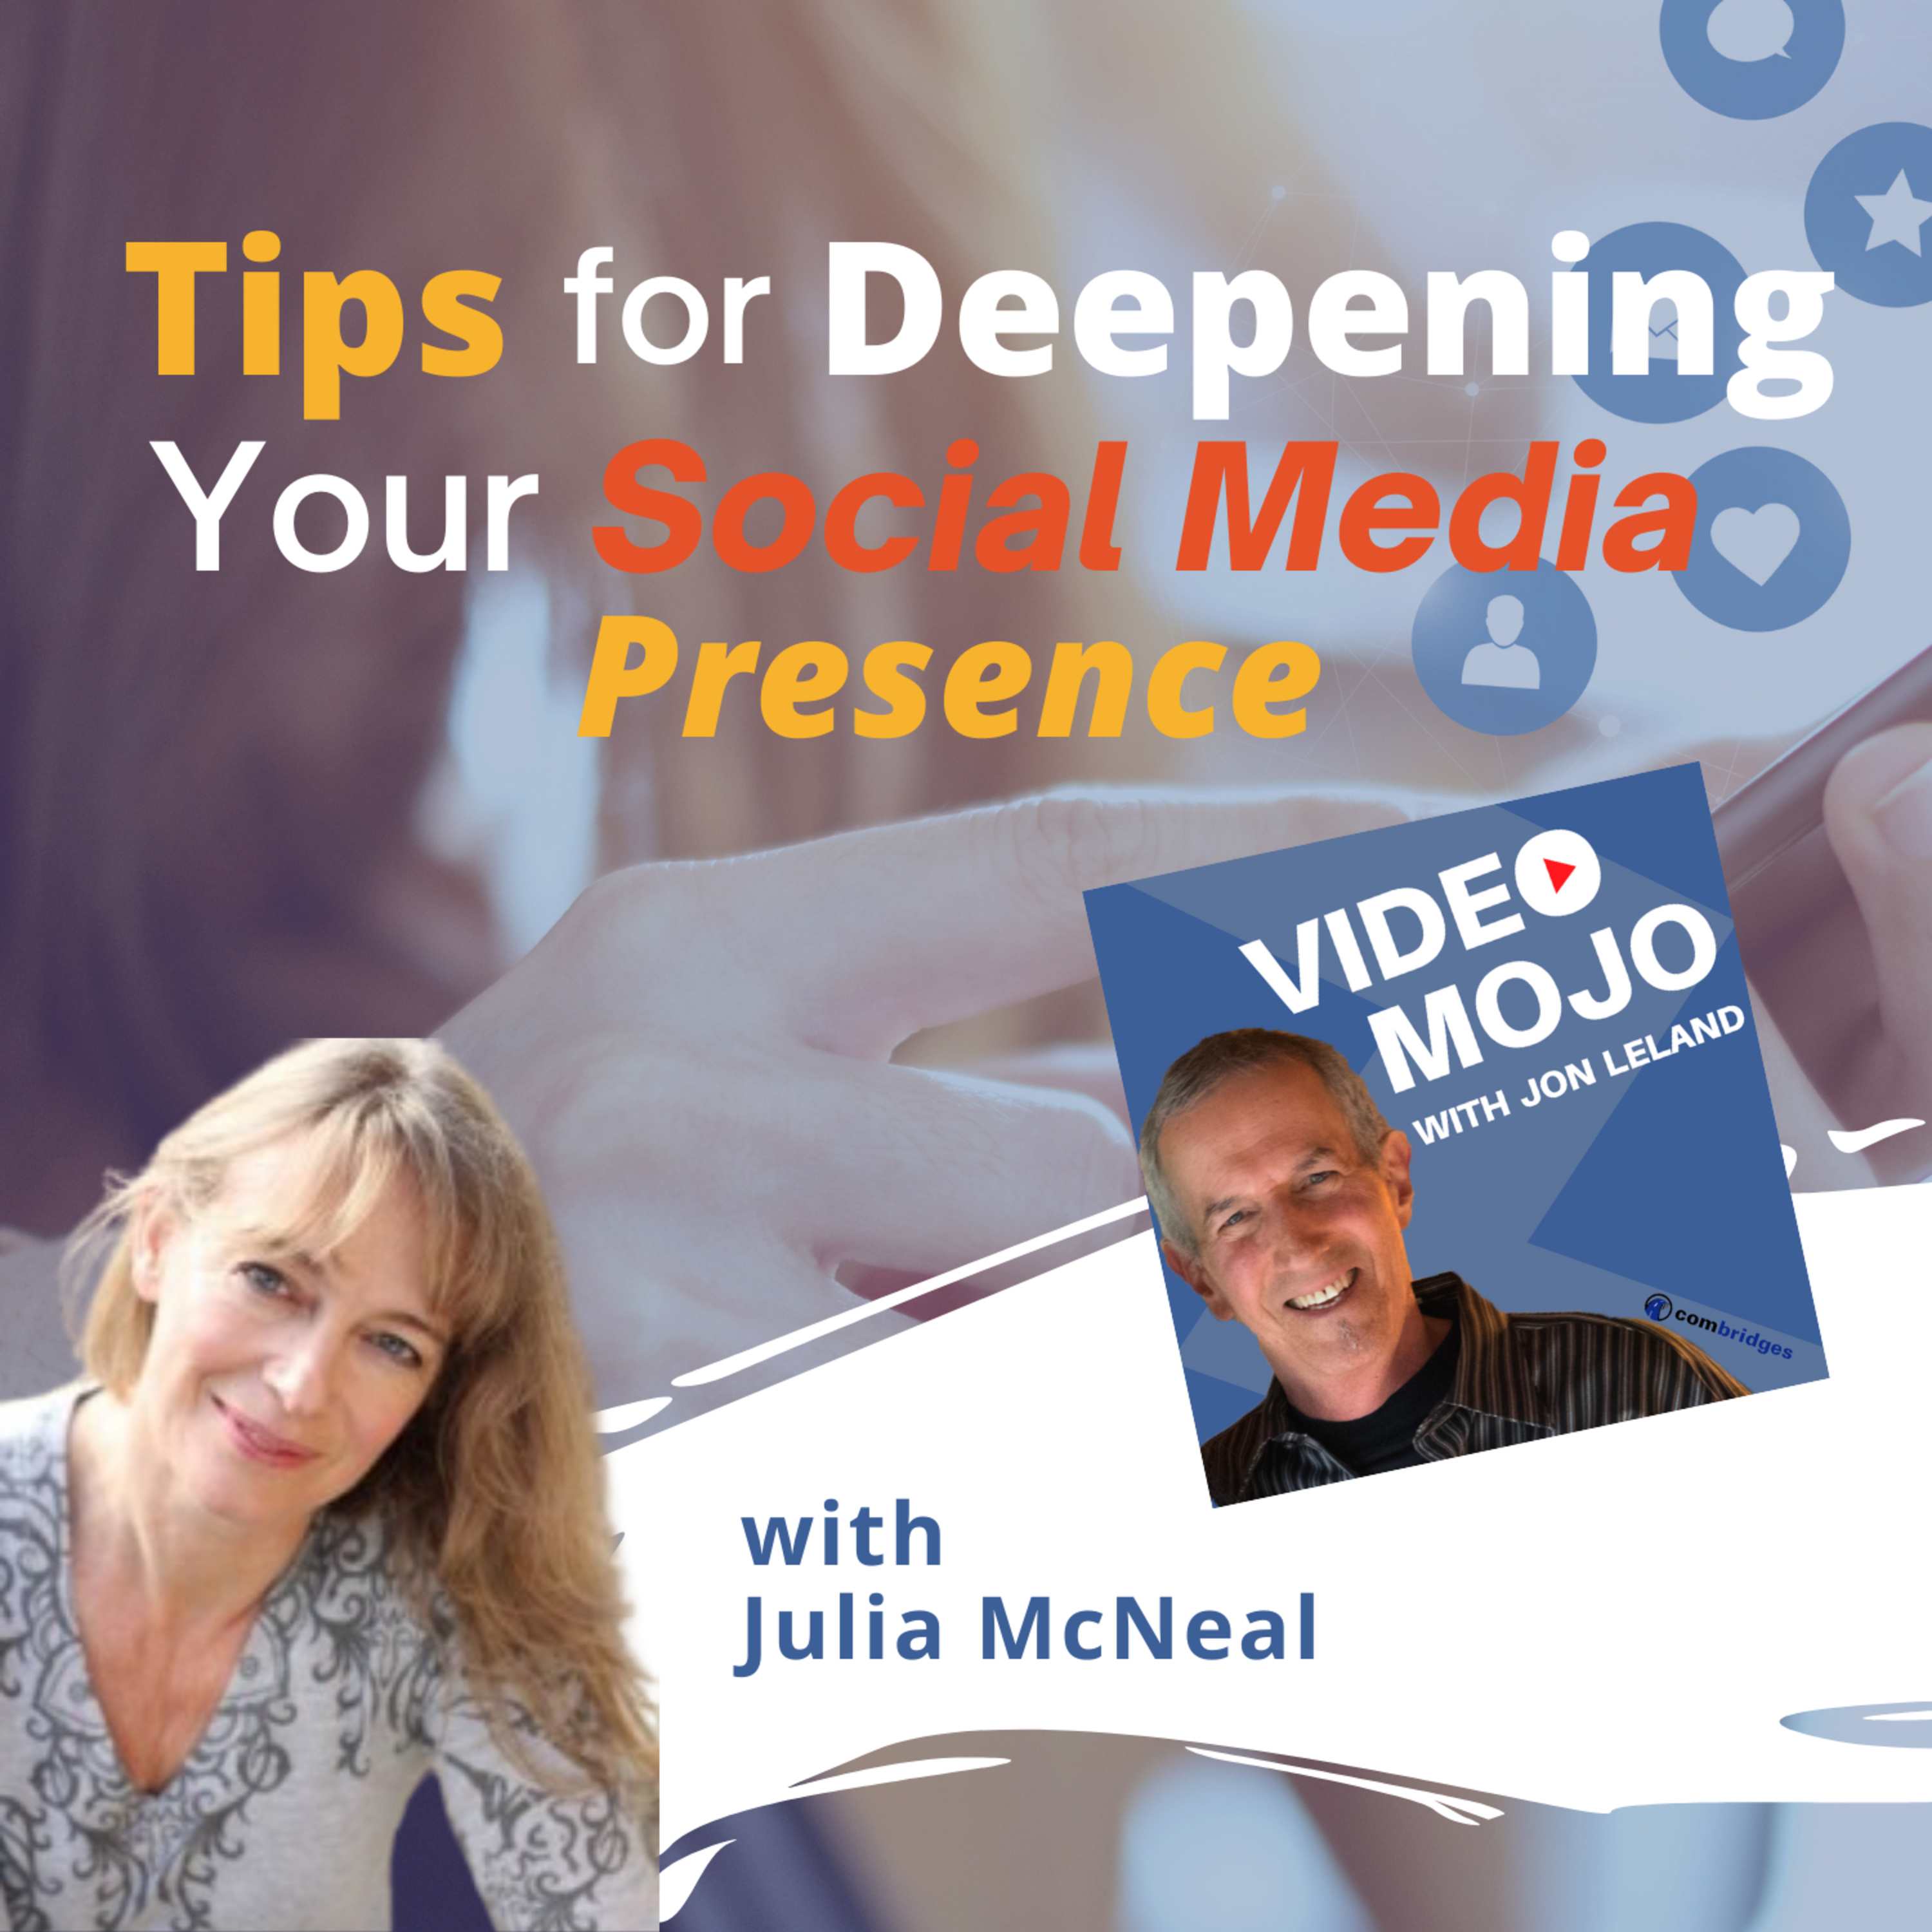 Tips for Deepening Your Social Media Presence with actress/coach, Julia McNeal